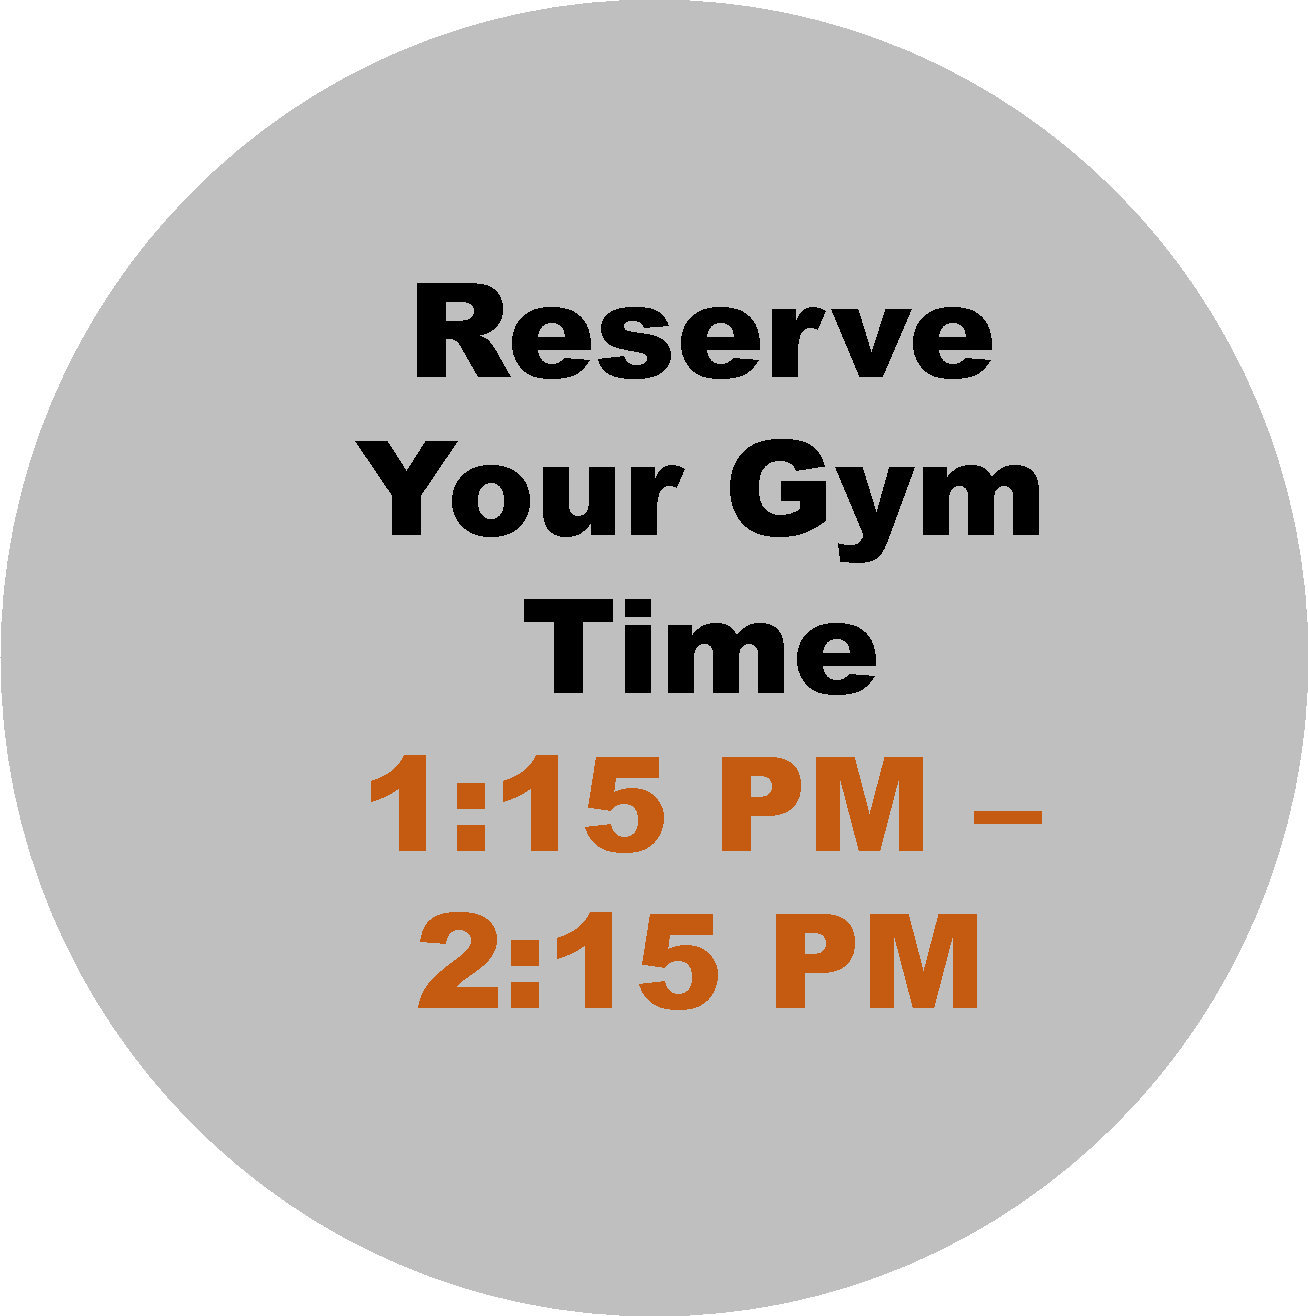 1:15 PM - 2:15 PM  Workout Hour